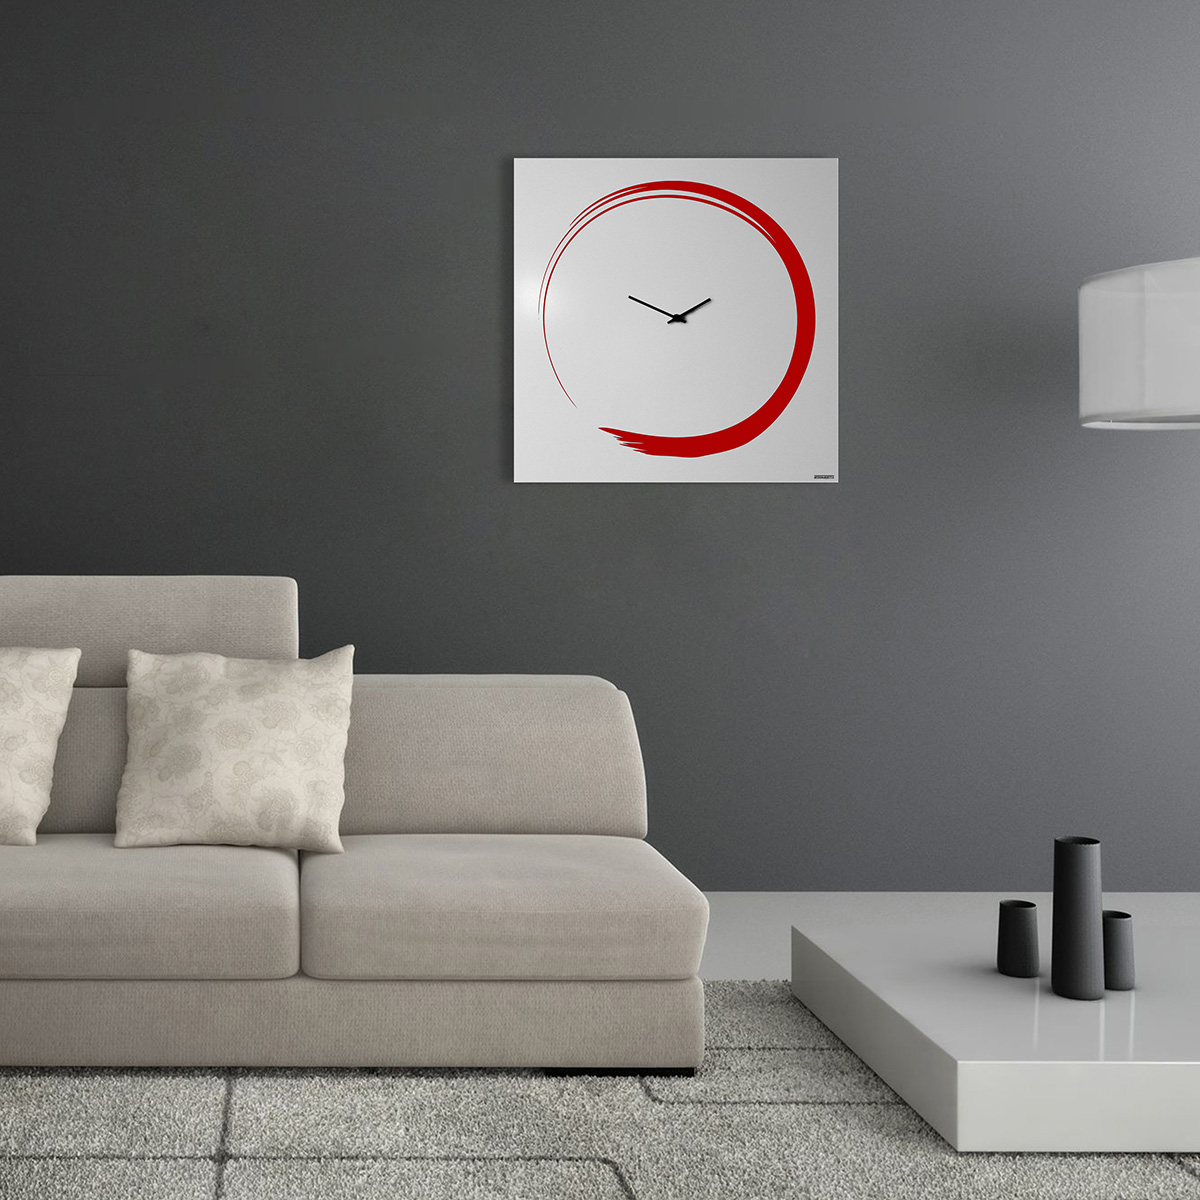 S enso modern big wall clock italian design designobject for Orologi a parete design